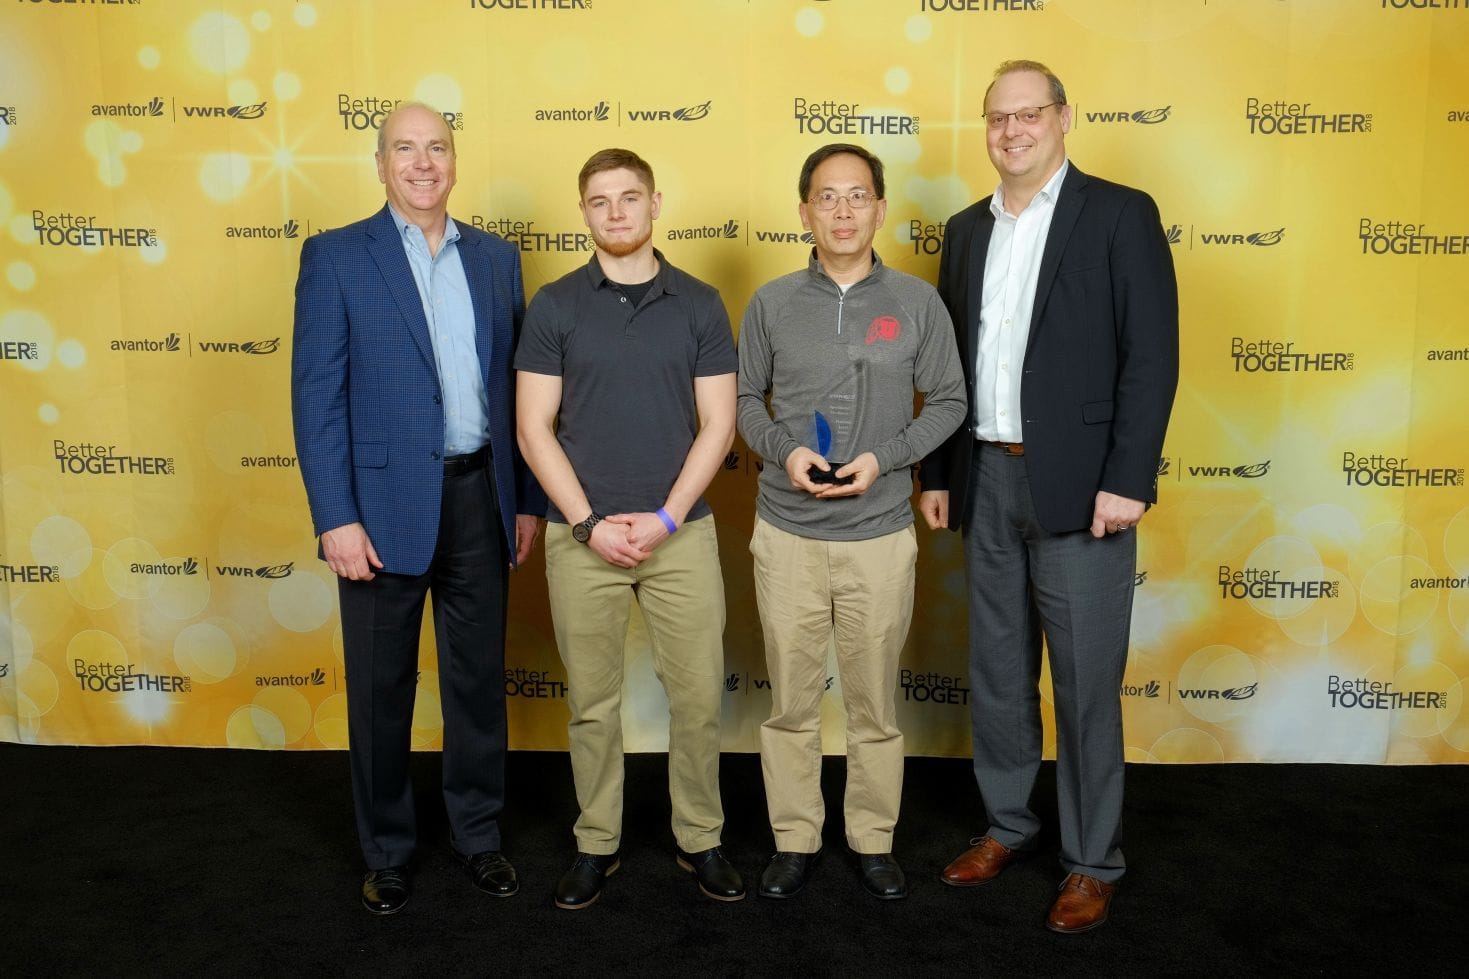 TWD Receives 2017 VWR Platinum Award in Operational Excellence